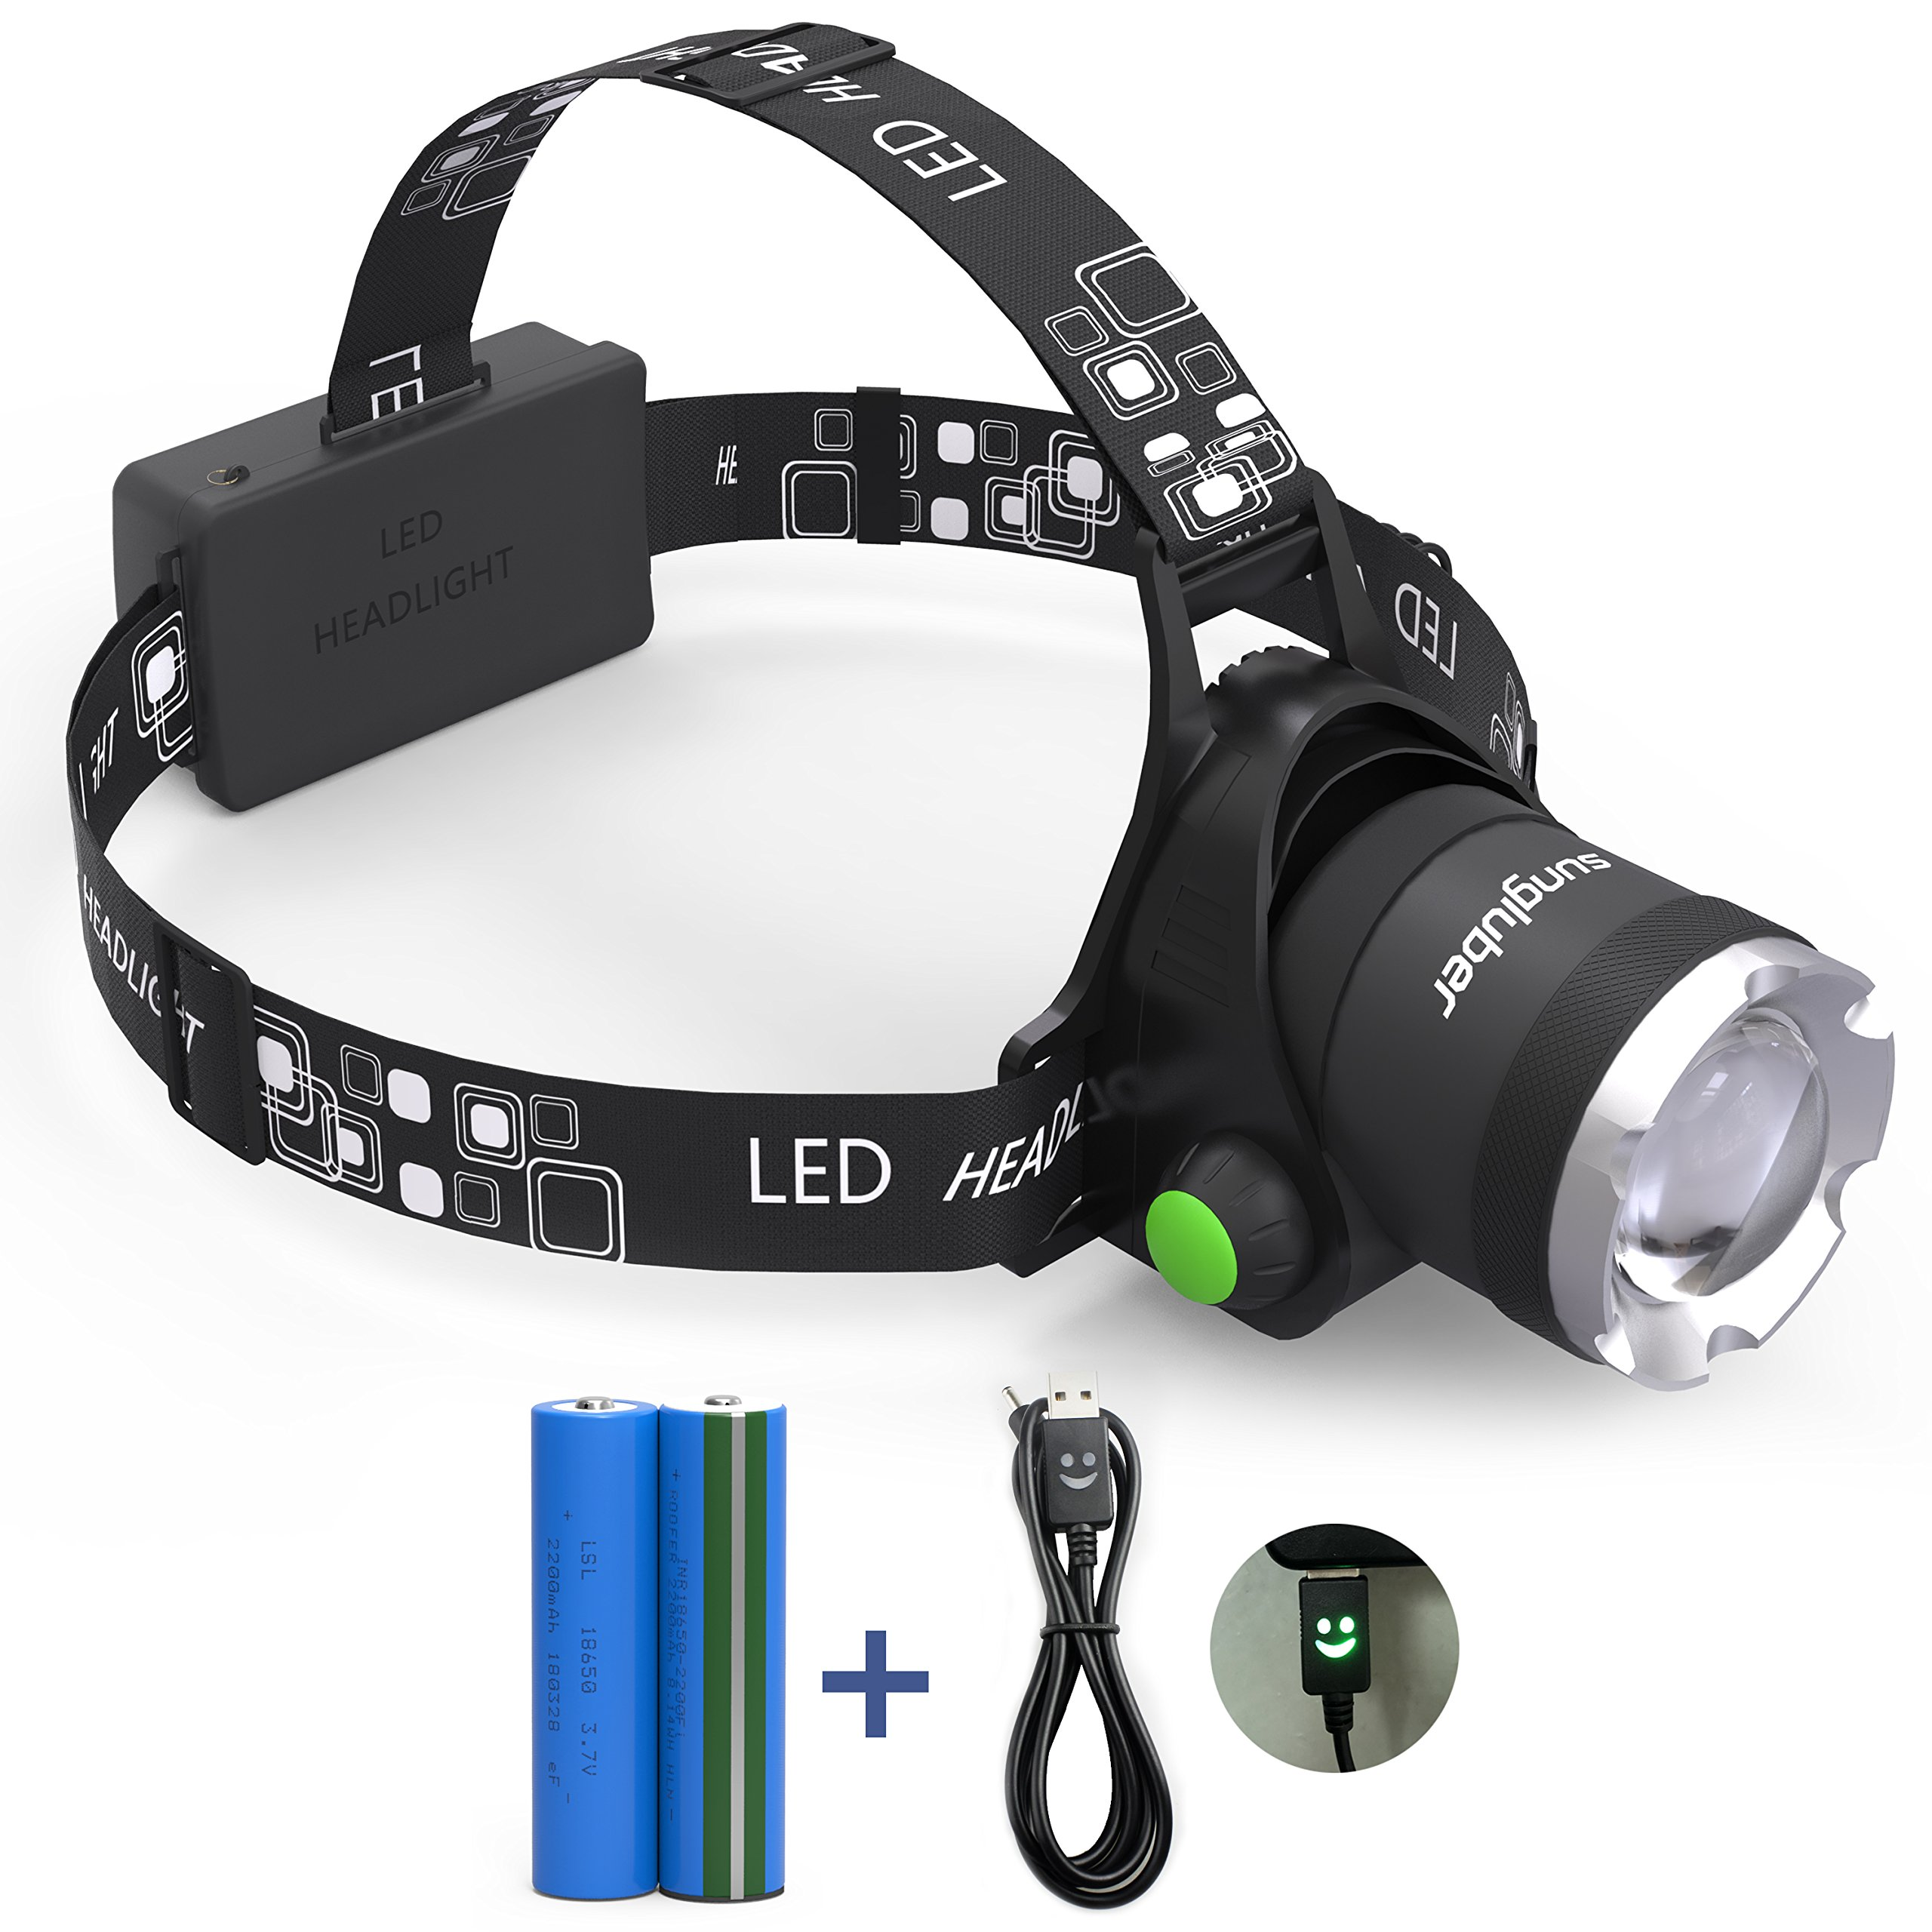 Headlamp, Sungluber 3 Modes Super Bright LED Headlight, Waterproof Flashlight with 90º Moving Zoomable 2Pack Rechargeable 18650 Battery Adjustable Headband by Sungluber (Image #4)